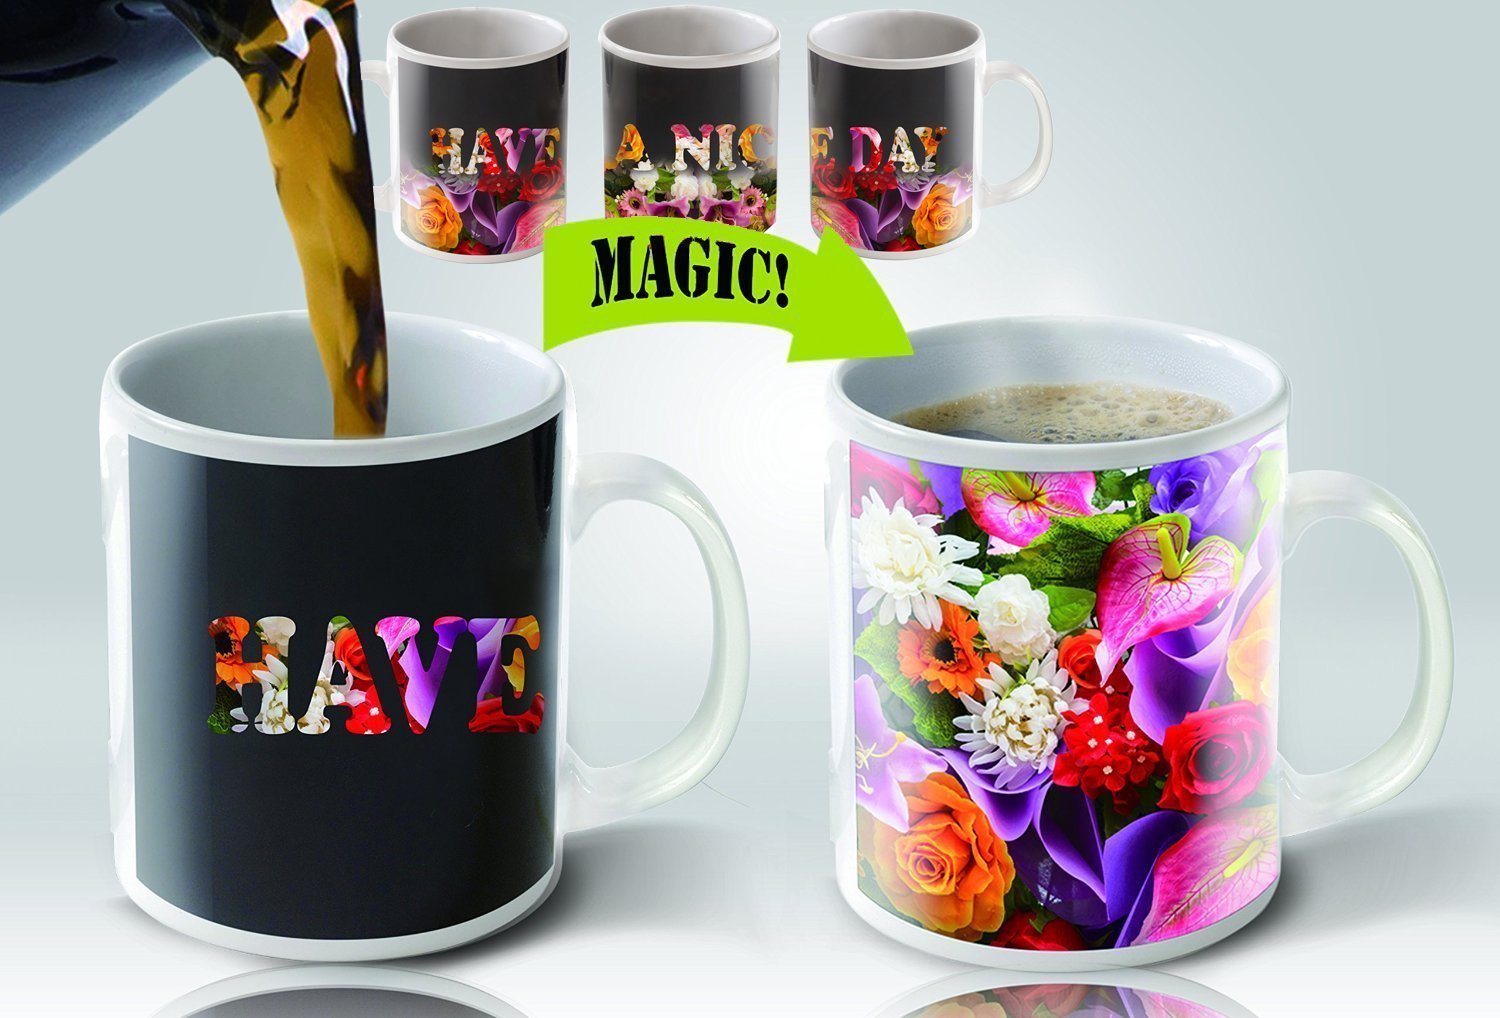 Cortunex | Amazing New Heat Sensitive Color Changing Coffee Mug | Good Gift Idea | Go Away Magic Mug 11oz